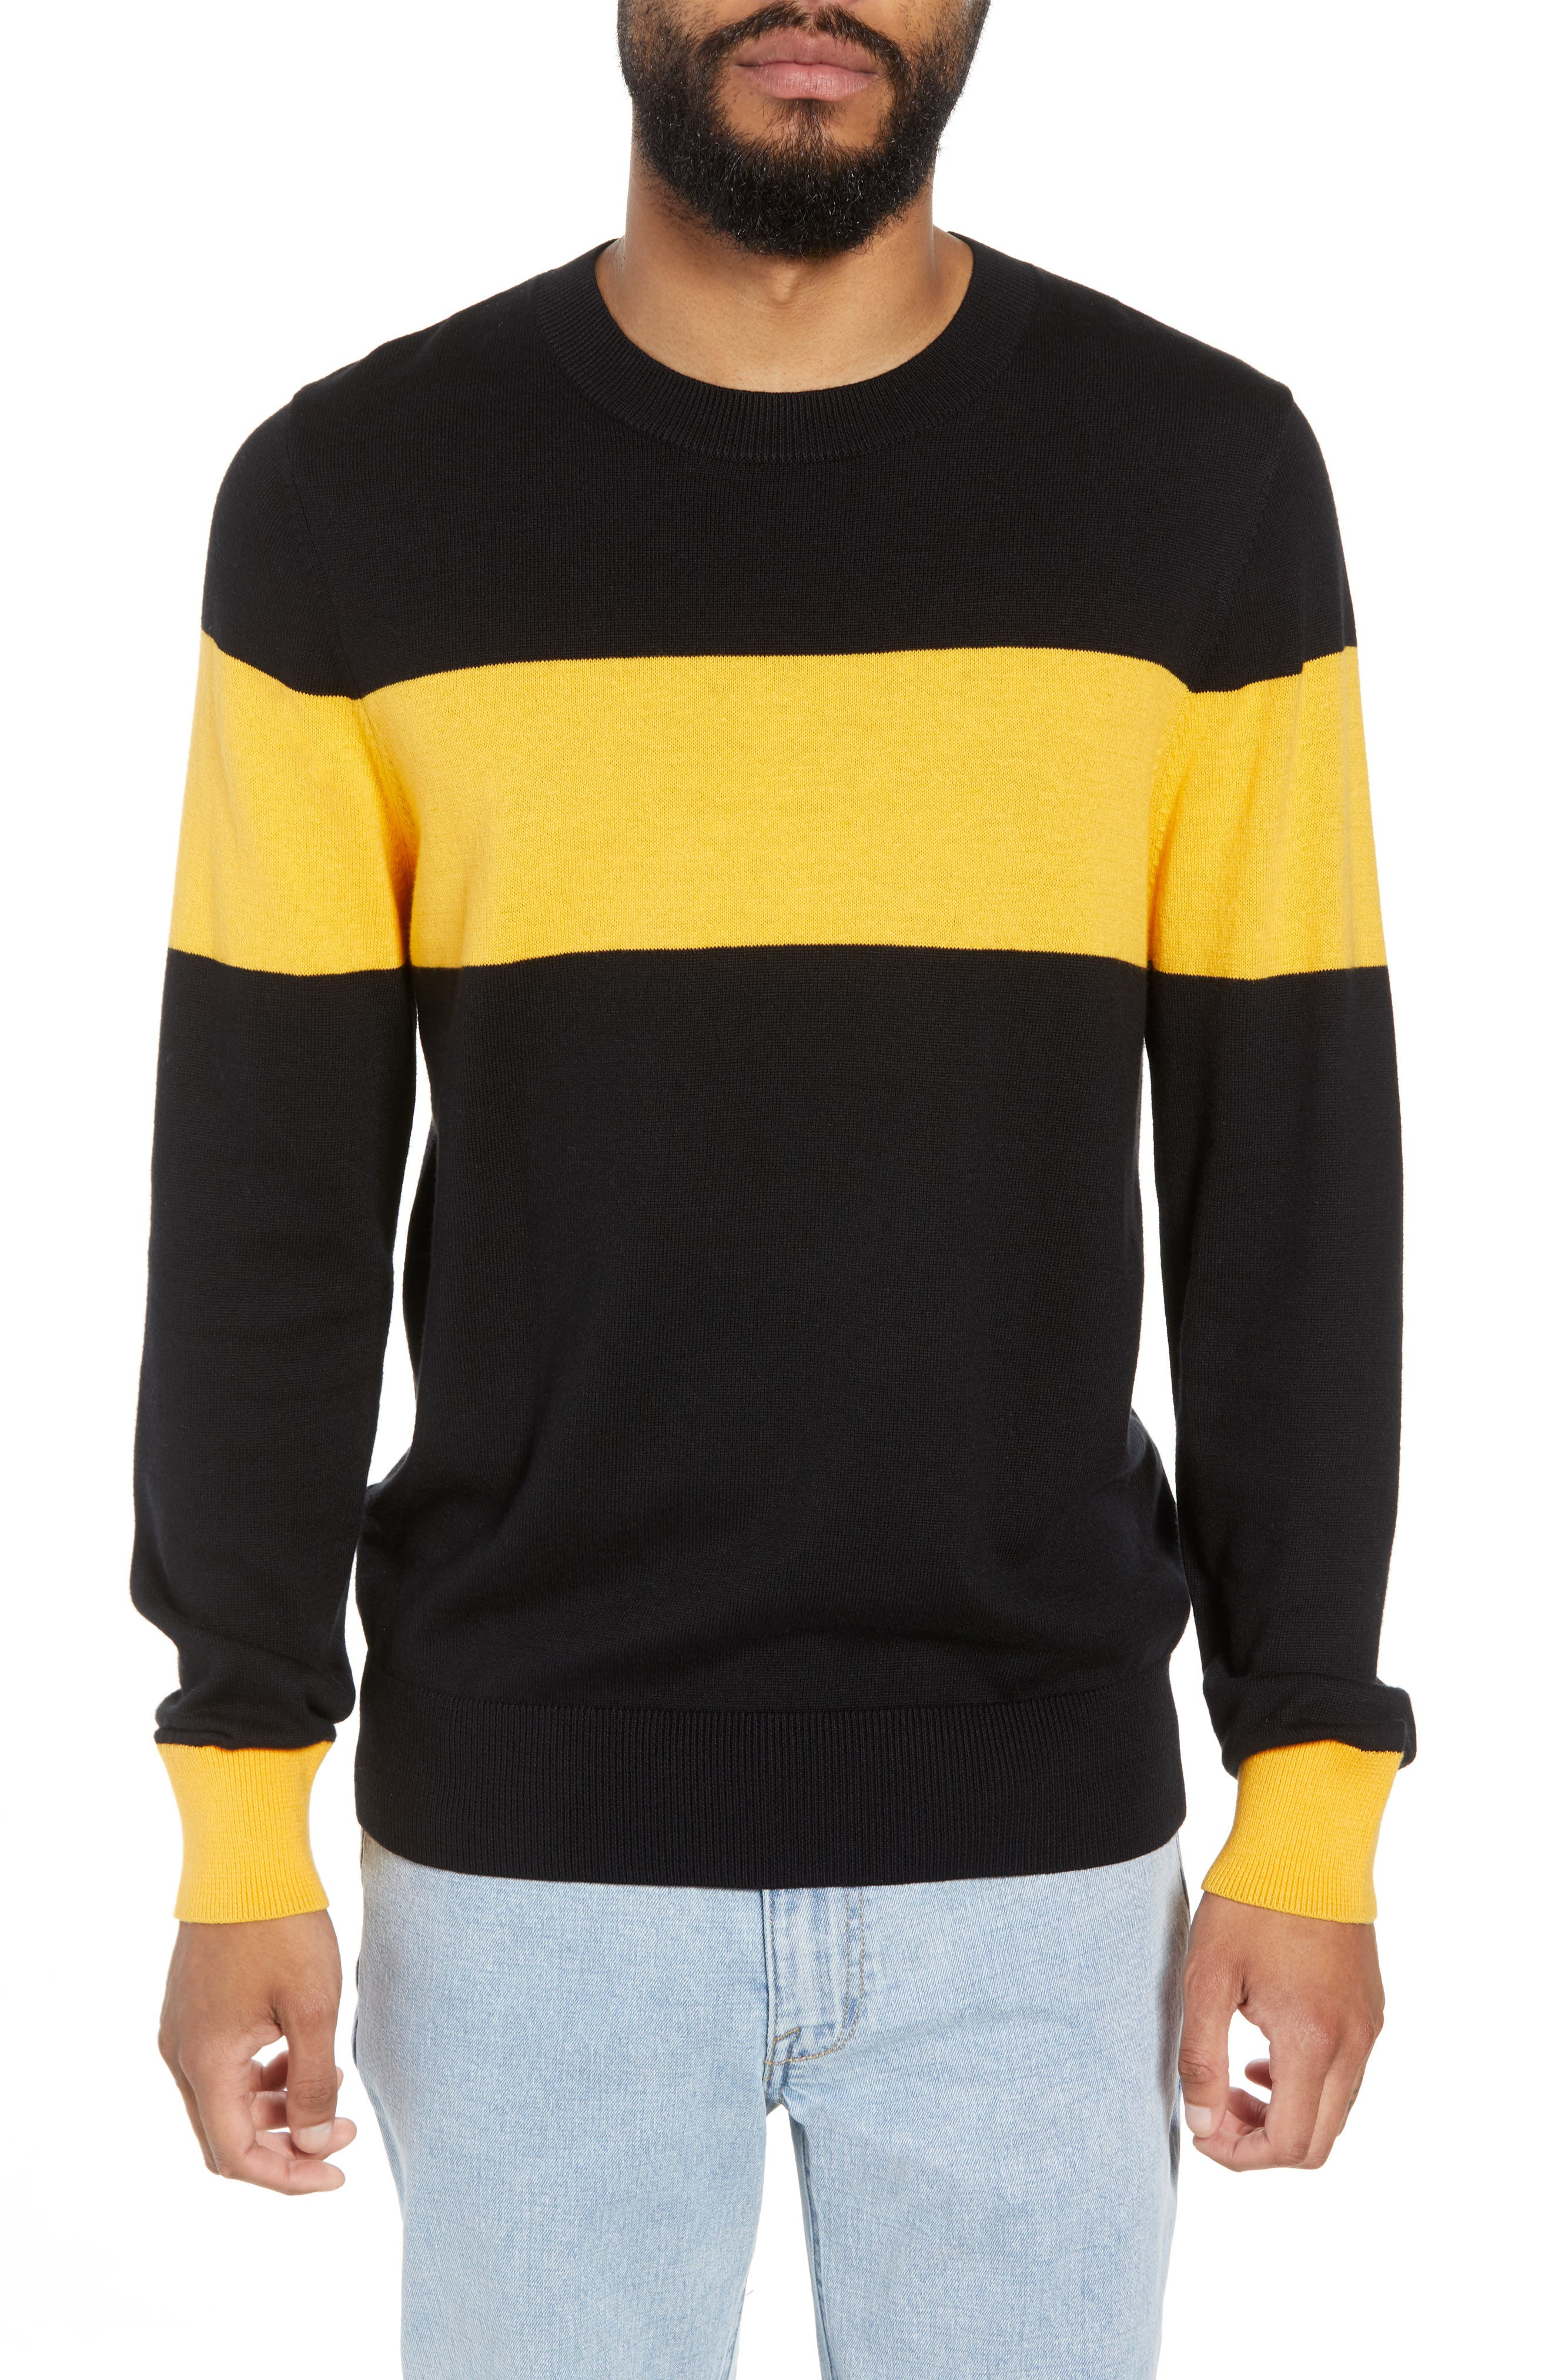 Rugby Stripe Sweater,                         Main,                         color, BLACK YELLOW RUGBY STRIPE